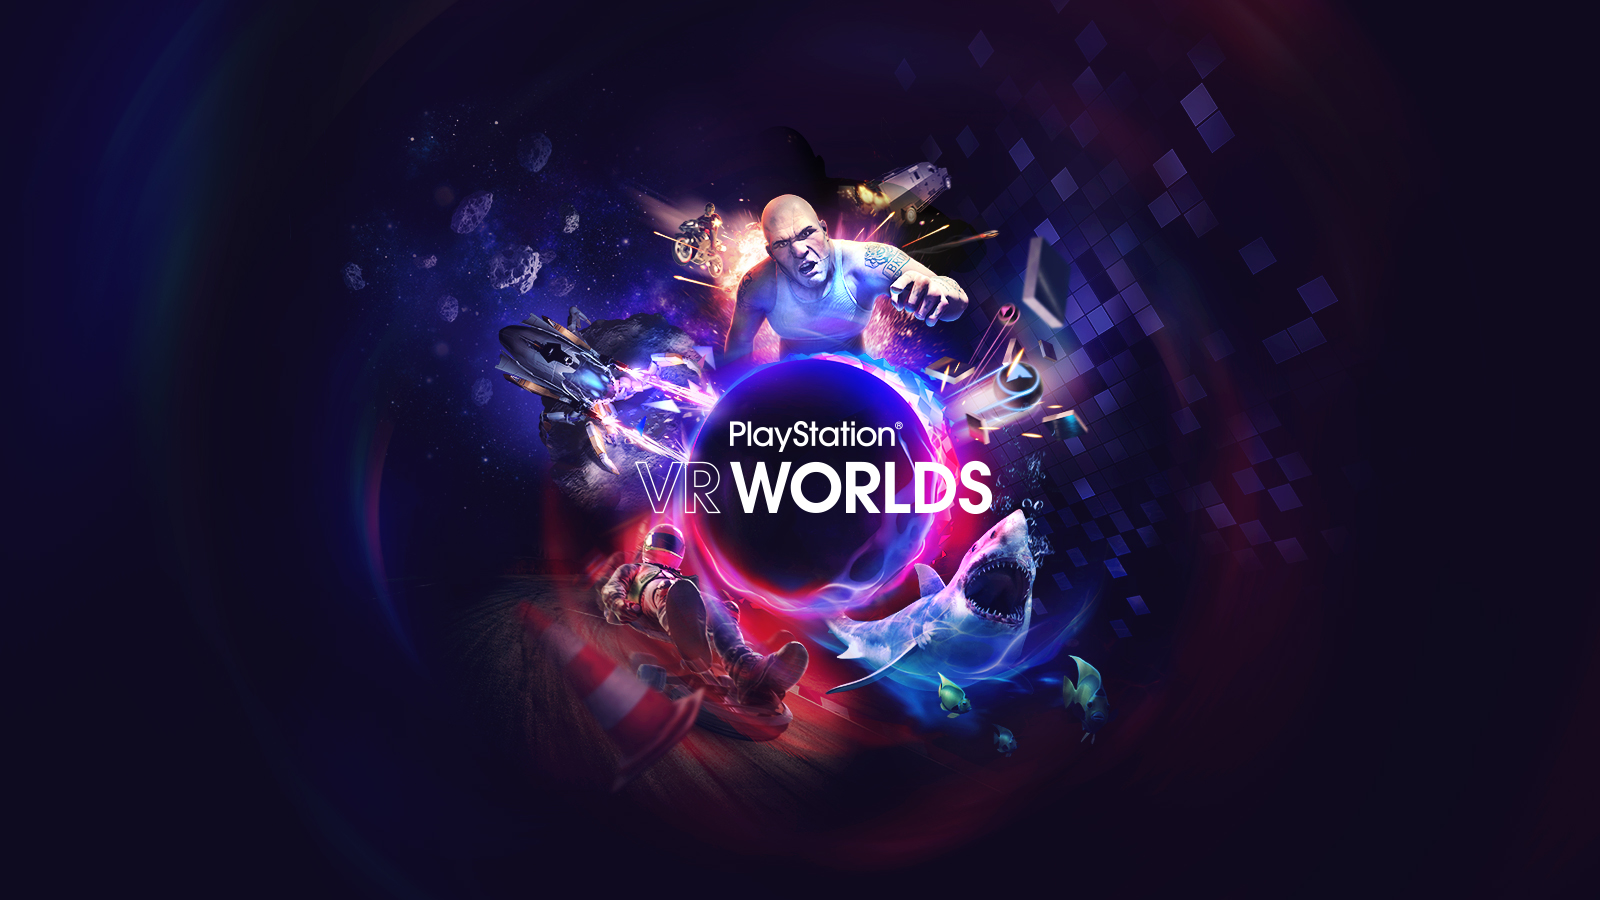 PlayStation VR Worlds - RYZIN Provided Weapons, Vehicles, and More for Sony London Studio.(UNDER NDA)